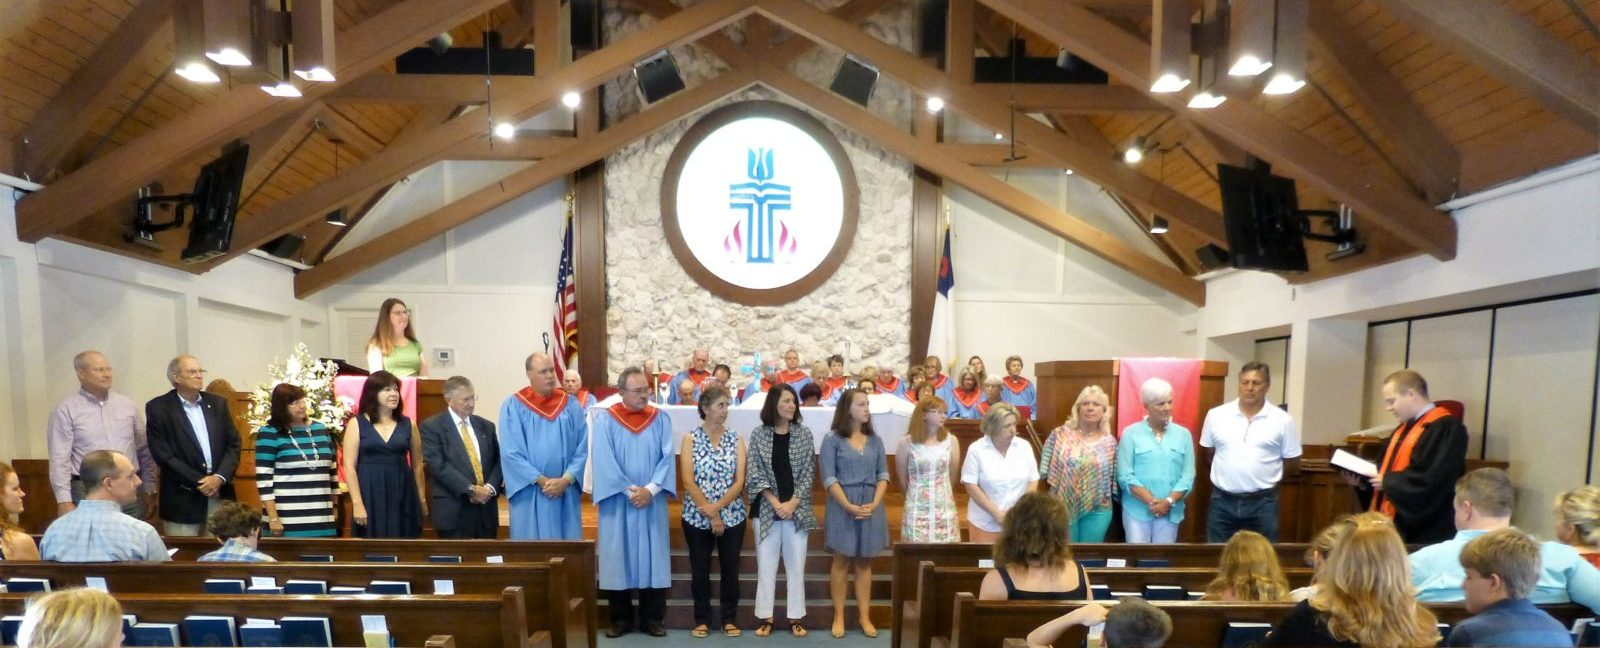 First Presbyterian Church of Tequesta - Tequesta Appointments